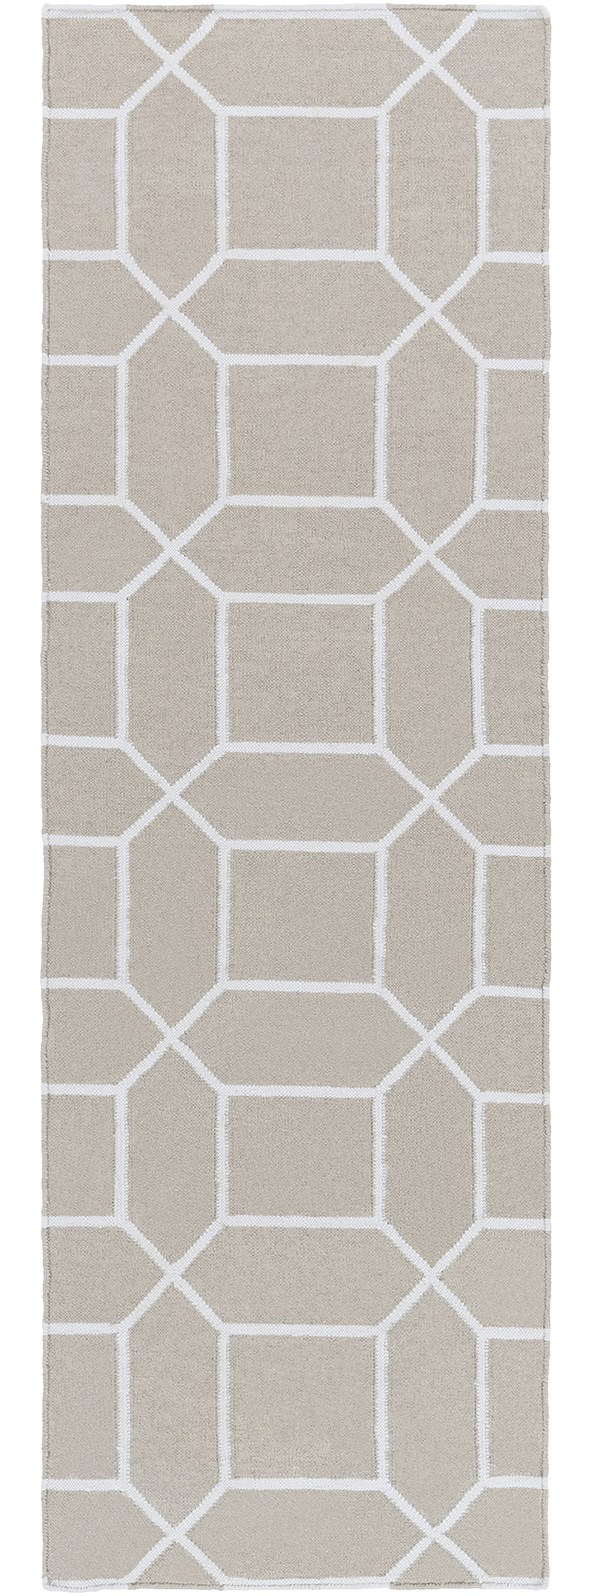 Ivory, White Moroccan Area Rug